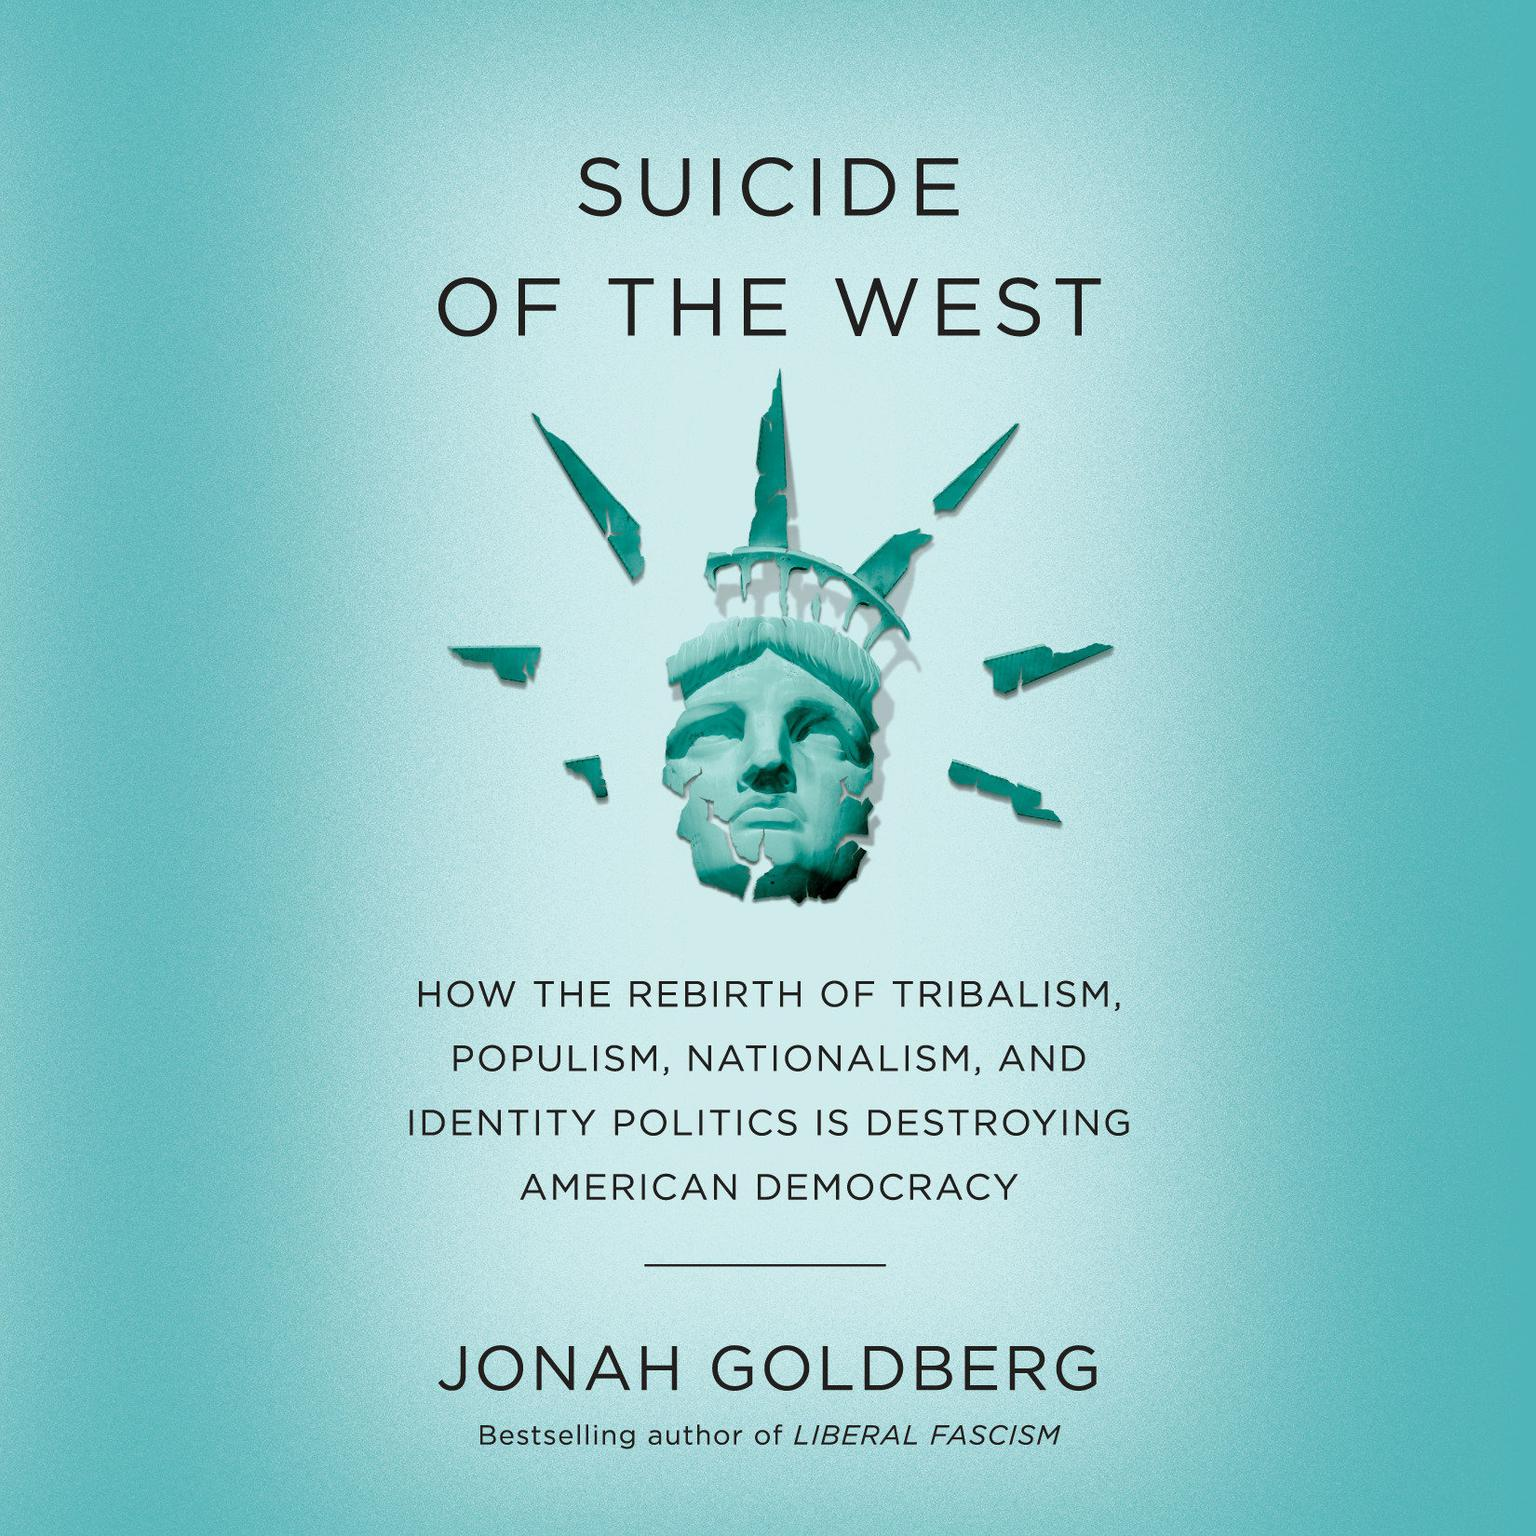 Suicide of the West: How the Rebirth of Tribalism, Populism, Nationalism, and Identity Politics is Destroying American Democracy Audiobook, by Jonah Goldberg